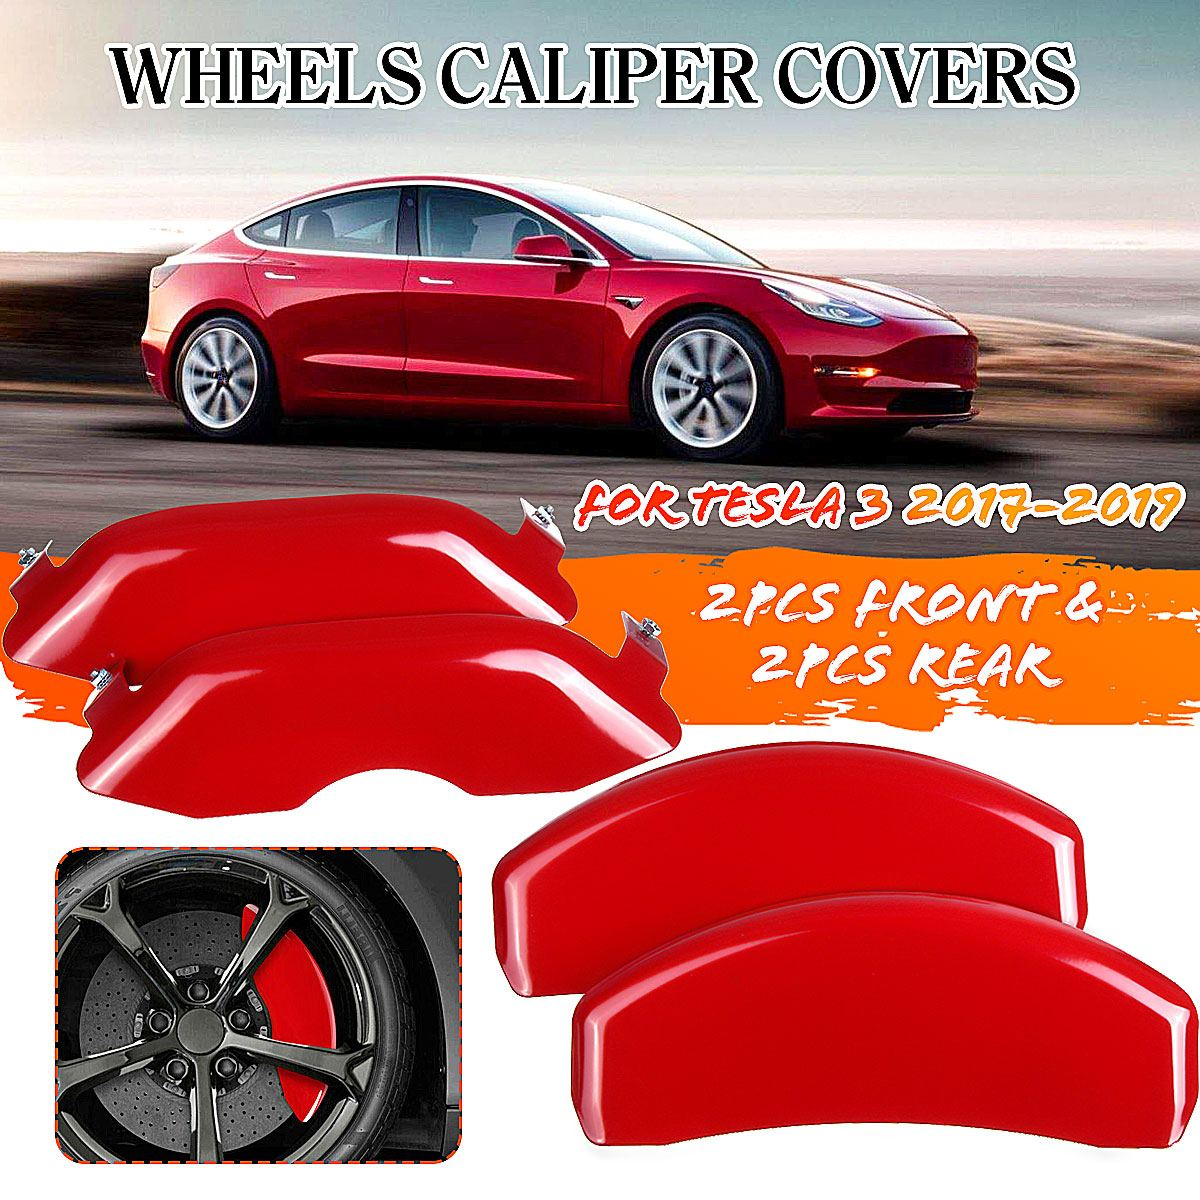 Caliper-Cover Disc-Brake Rear-Brake-Cover Car-Wheel Tesla-Model Front Long-Range Red title=